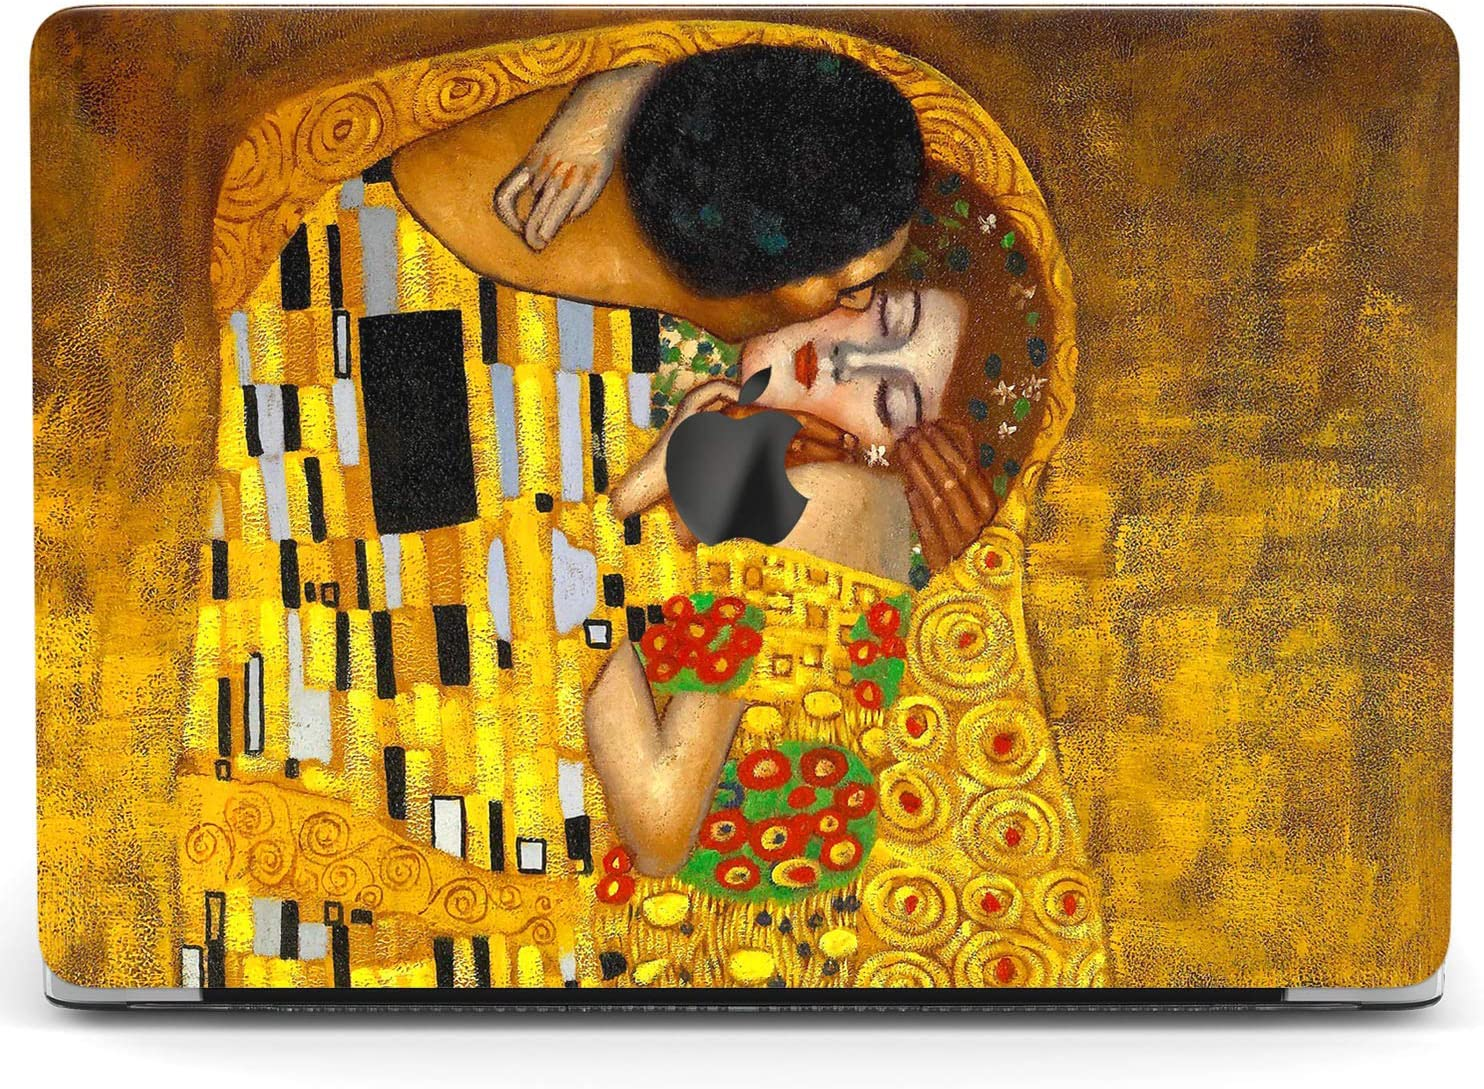 Wonder Wild Case for MacBook Air 13 inch Pro 15 2019 2018 Retina 12 11 Apple Hard Mac Protective Cover Touch Bar 2017 2016 2020 Plastic Laptop Print The Kiss Gustav Klimt Art Orange Famous Love Paint